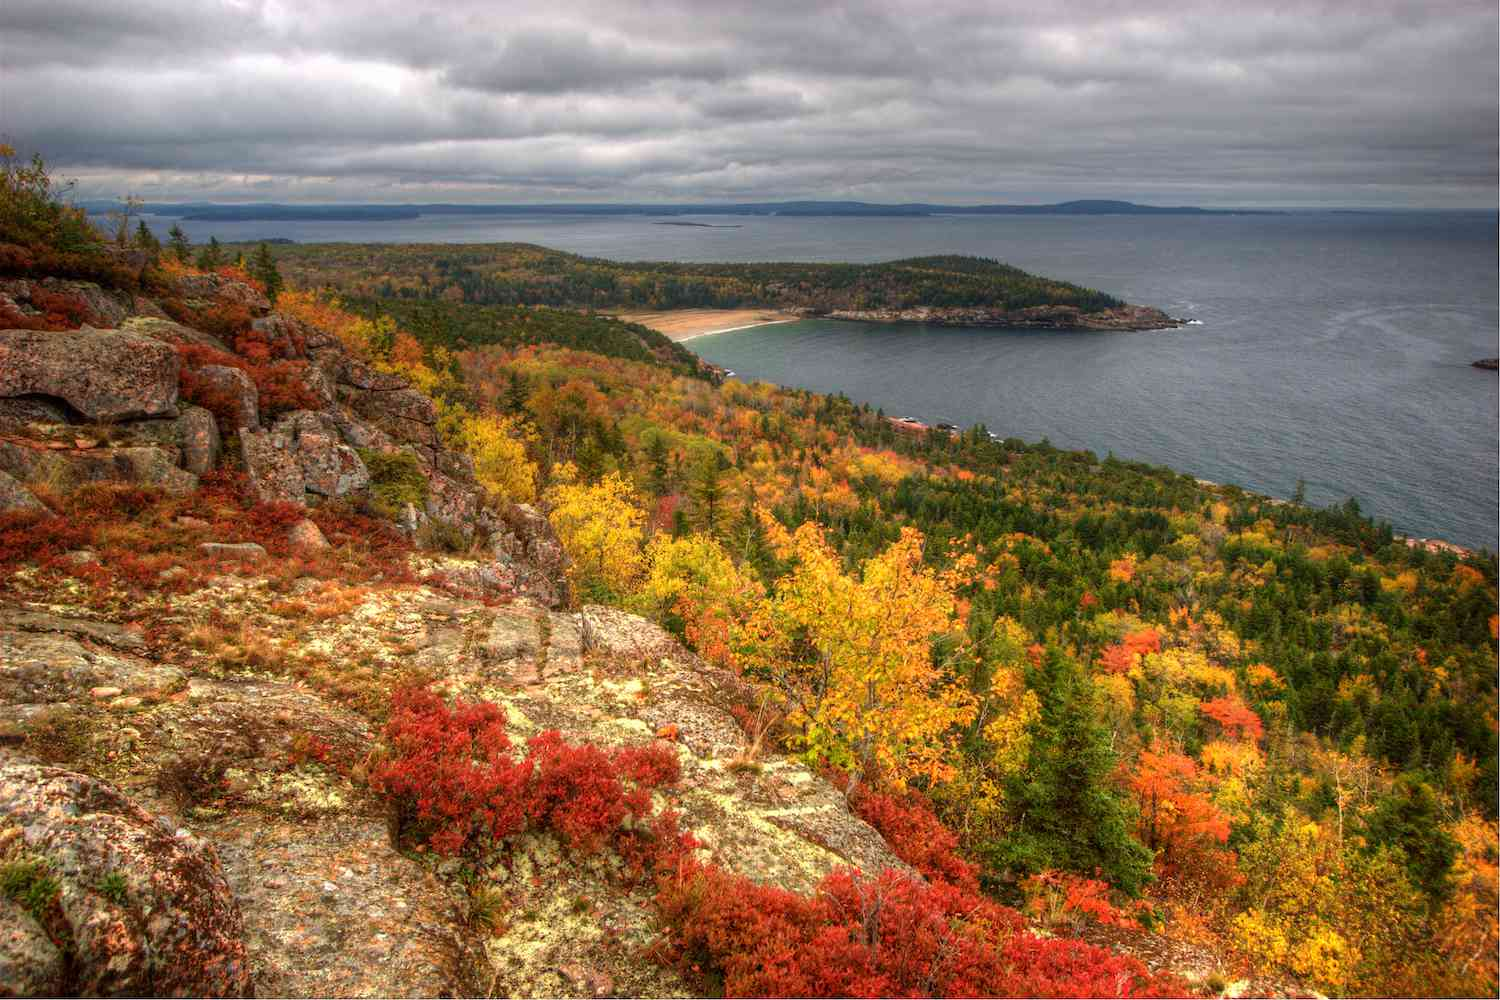 Dark, cloudy skies above the red, yellow, and green of fall with the harbor in the background